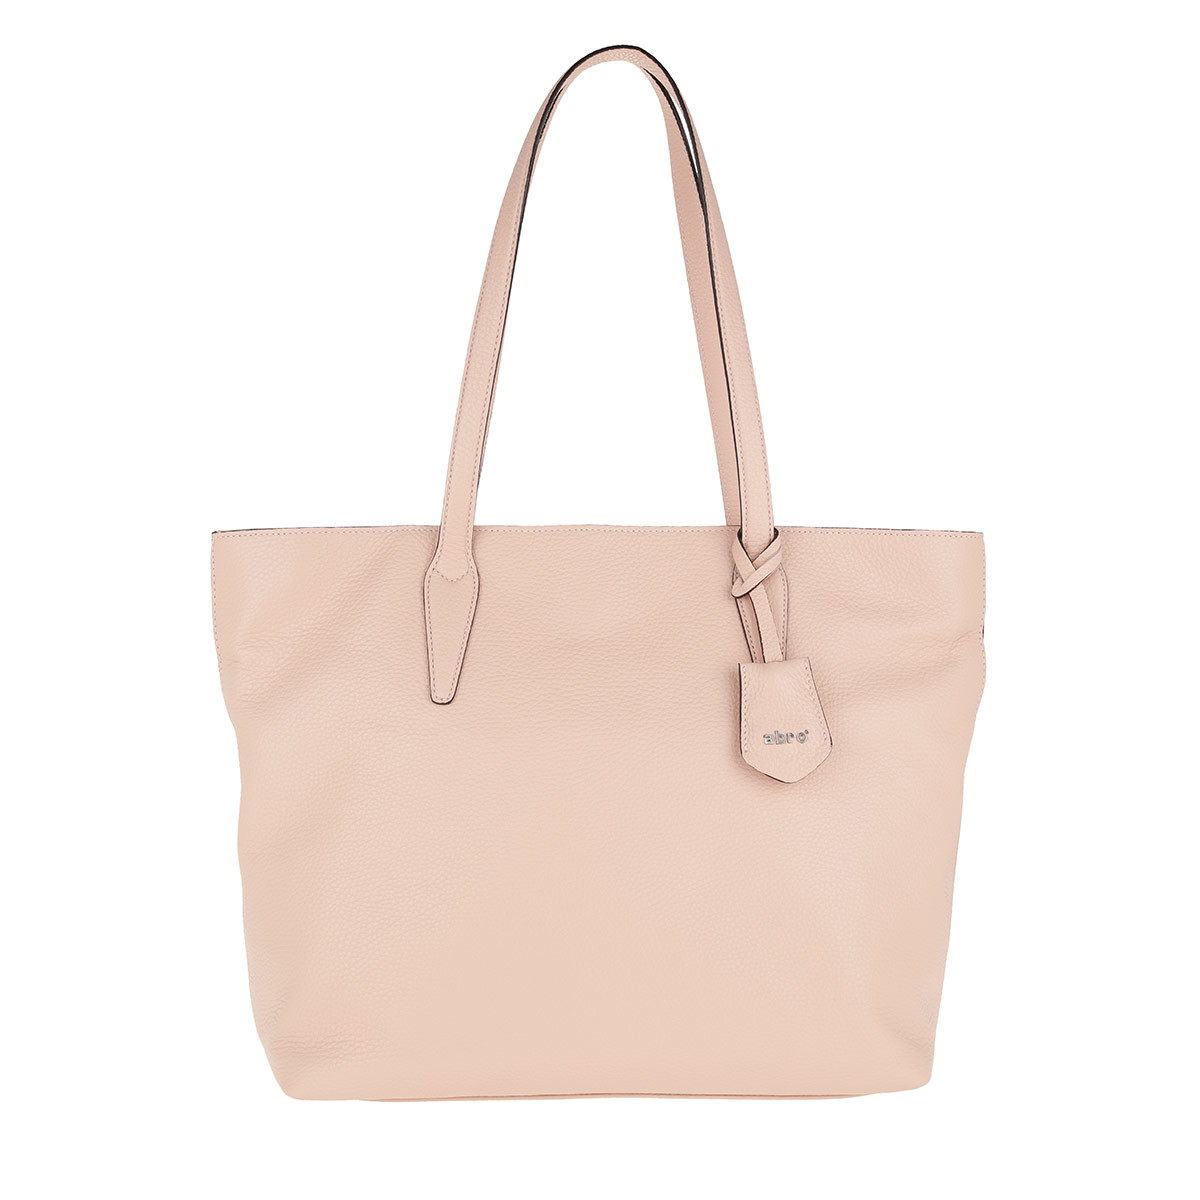 Abro Shopper - Calf Adria Shopper Rosa - in rosa - für Damen